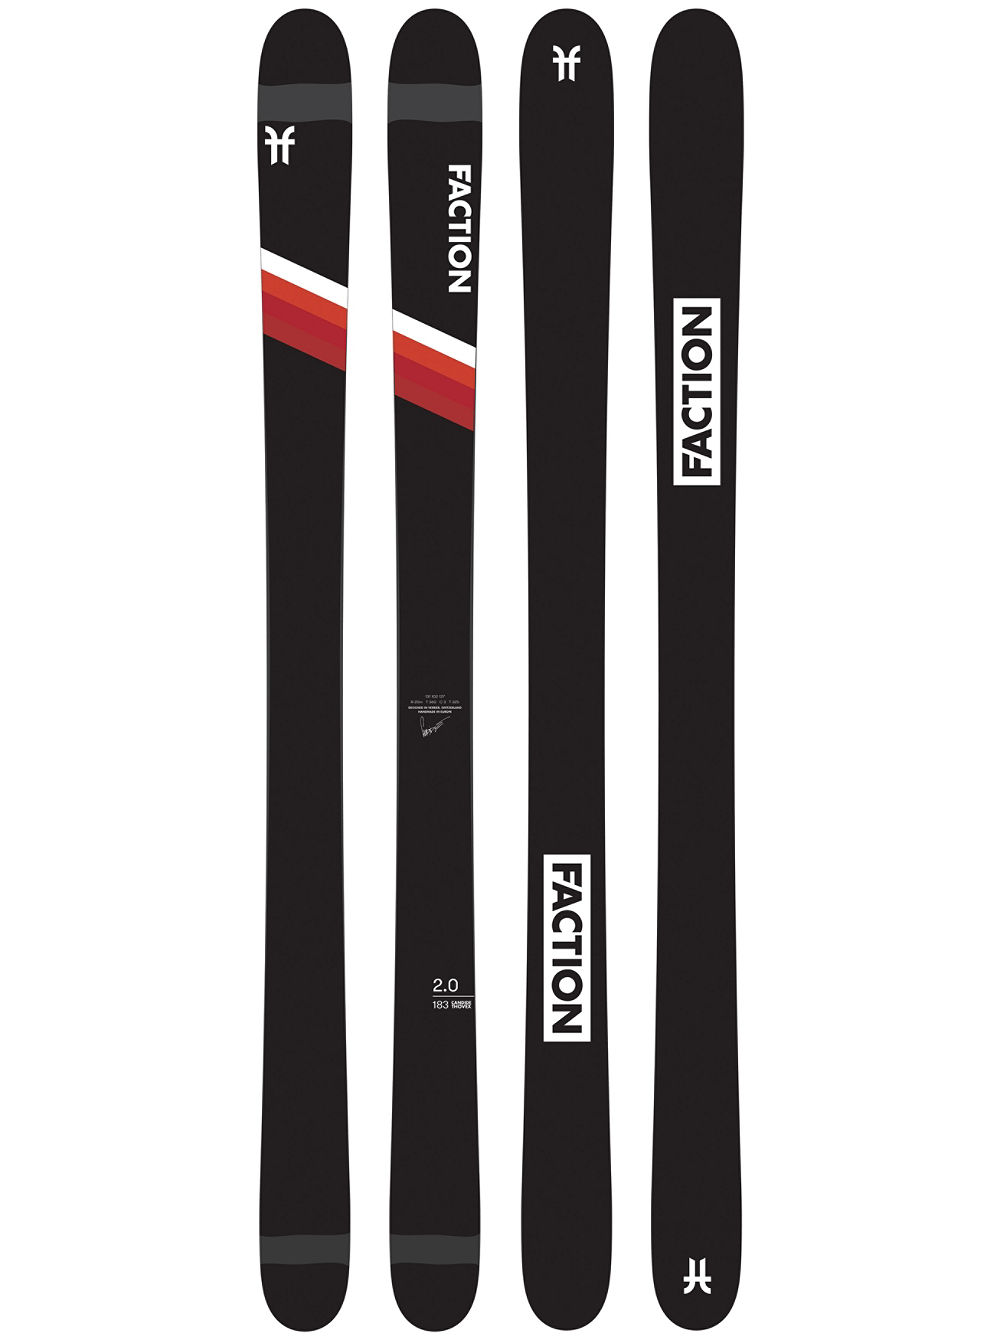 Candide 2.0 102mm 173 2021 Skis